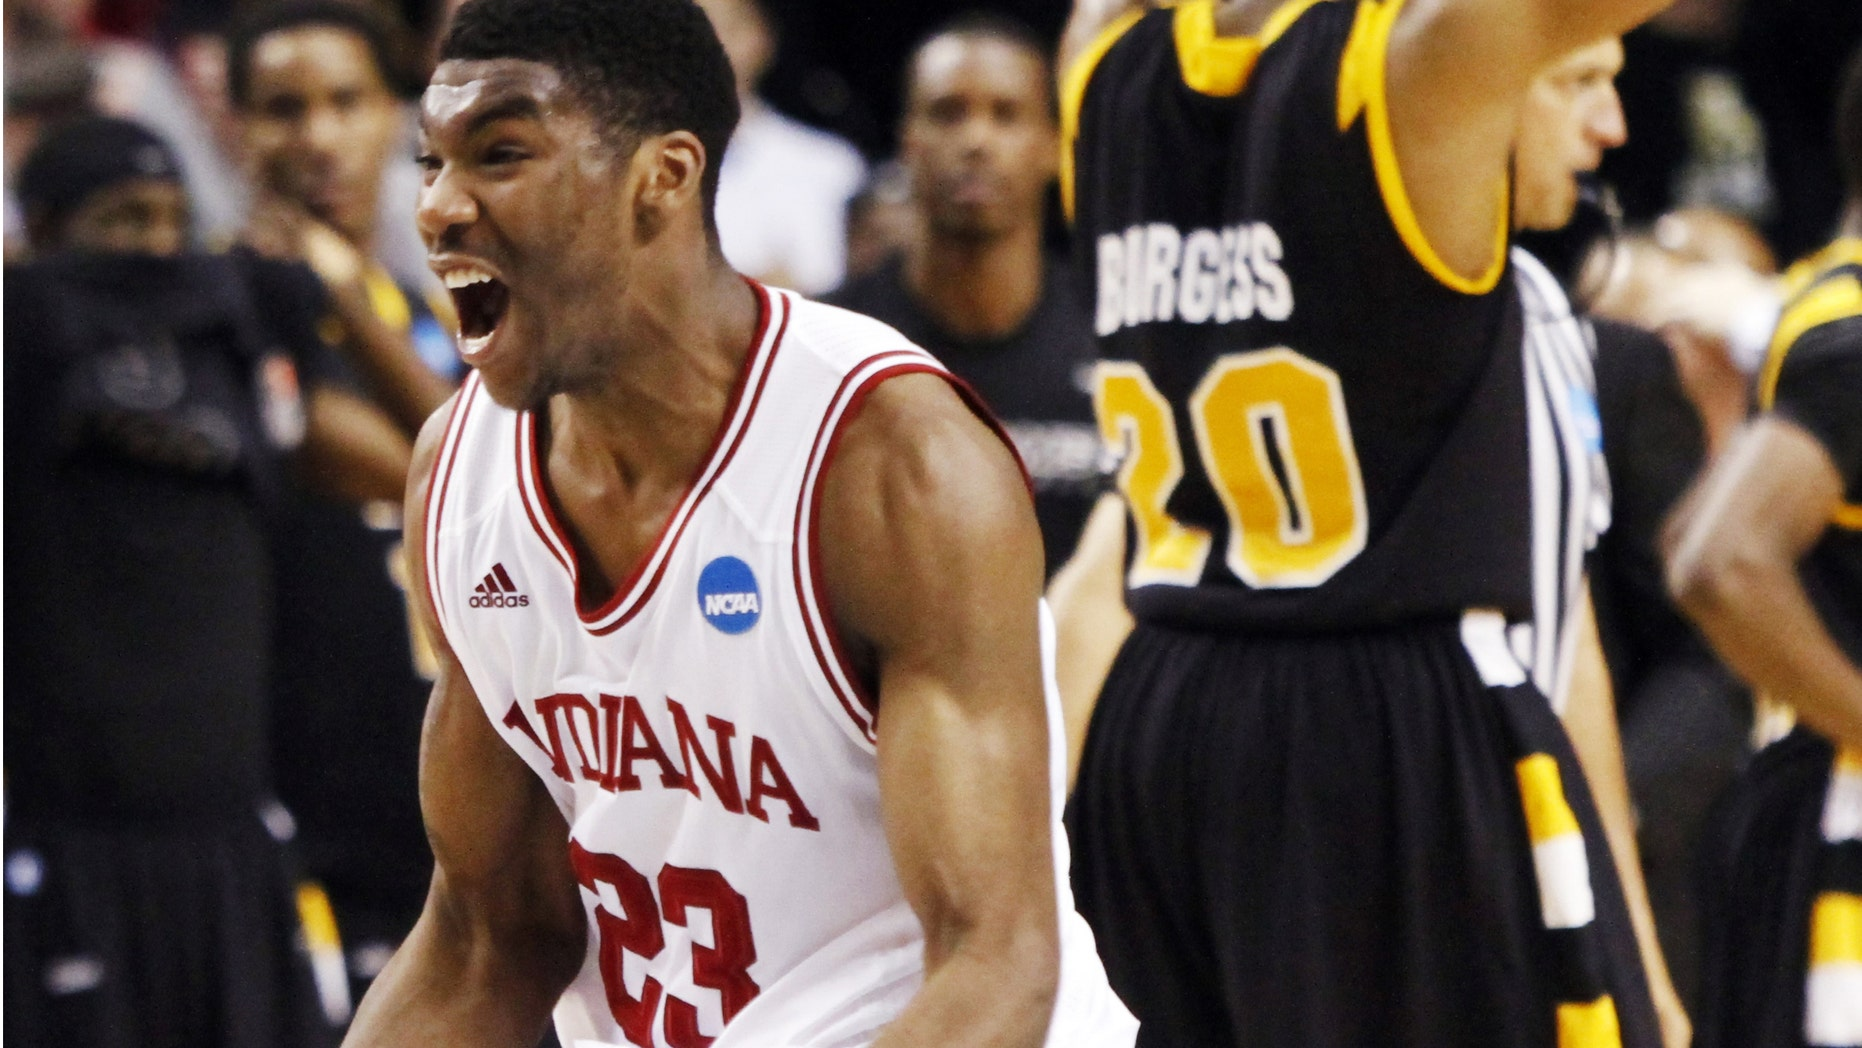 Indiana guard Remy Abell, left, celebrates as Virginia Commonwealth's Bradford Burgess walks away after Indiana's 63-61 win in an NCAA men's tournament third-round college basketball game in Portland, Ore., Saturday, March 17, 2012. (AP Photo/Don Ryan)